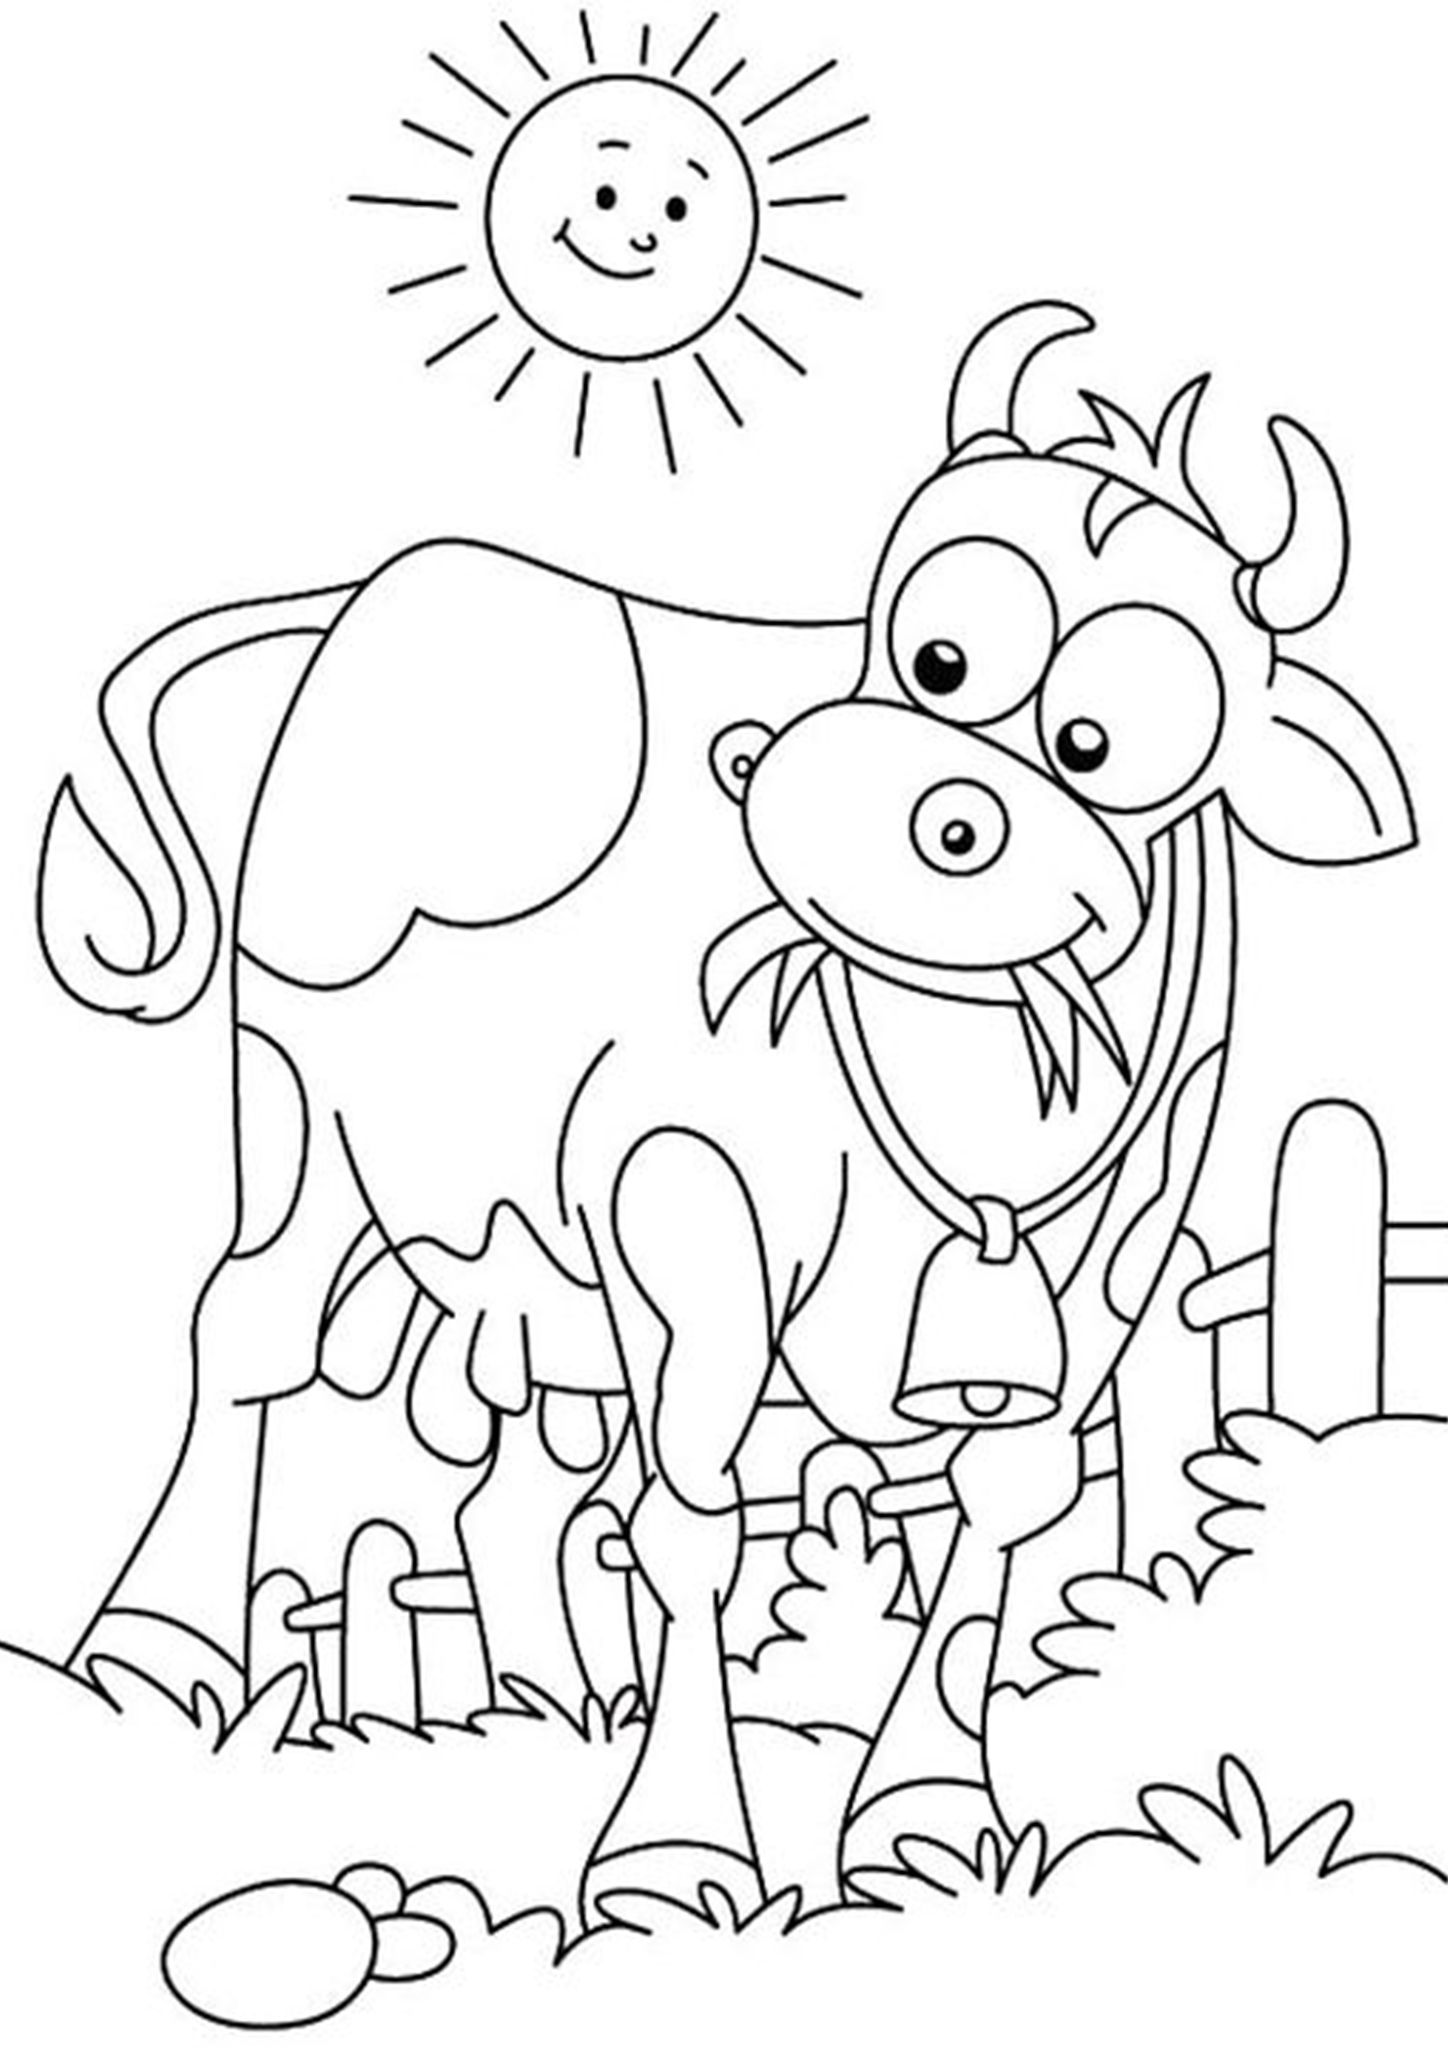 Free Easy To Print Cow Coloring Pages Cow Coloring Pages Dinosaur Coloring Pages Farm Coloring Pages